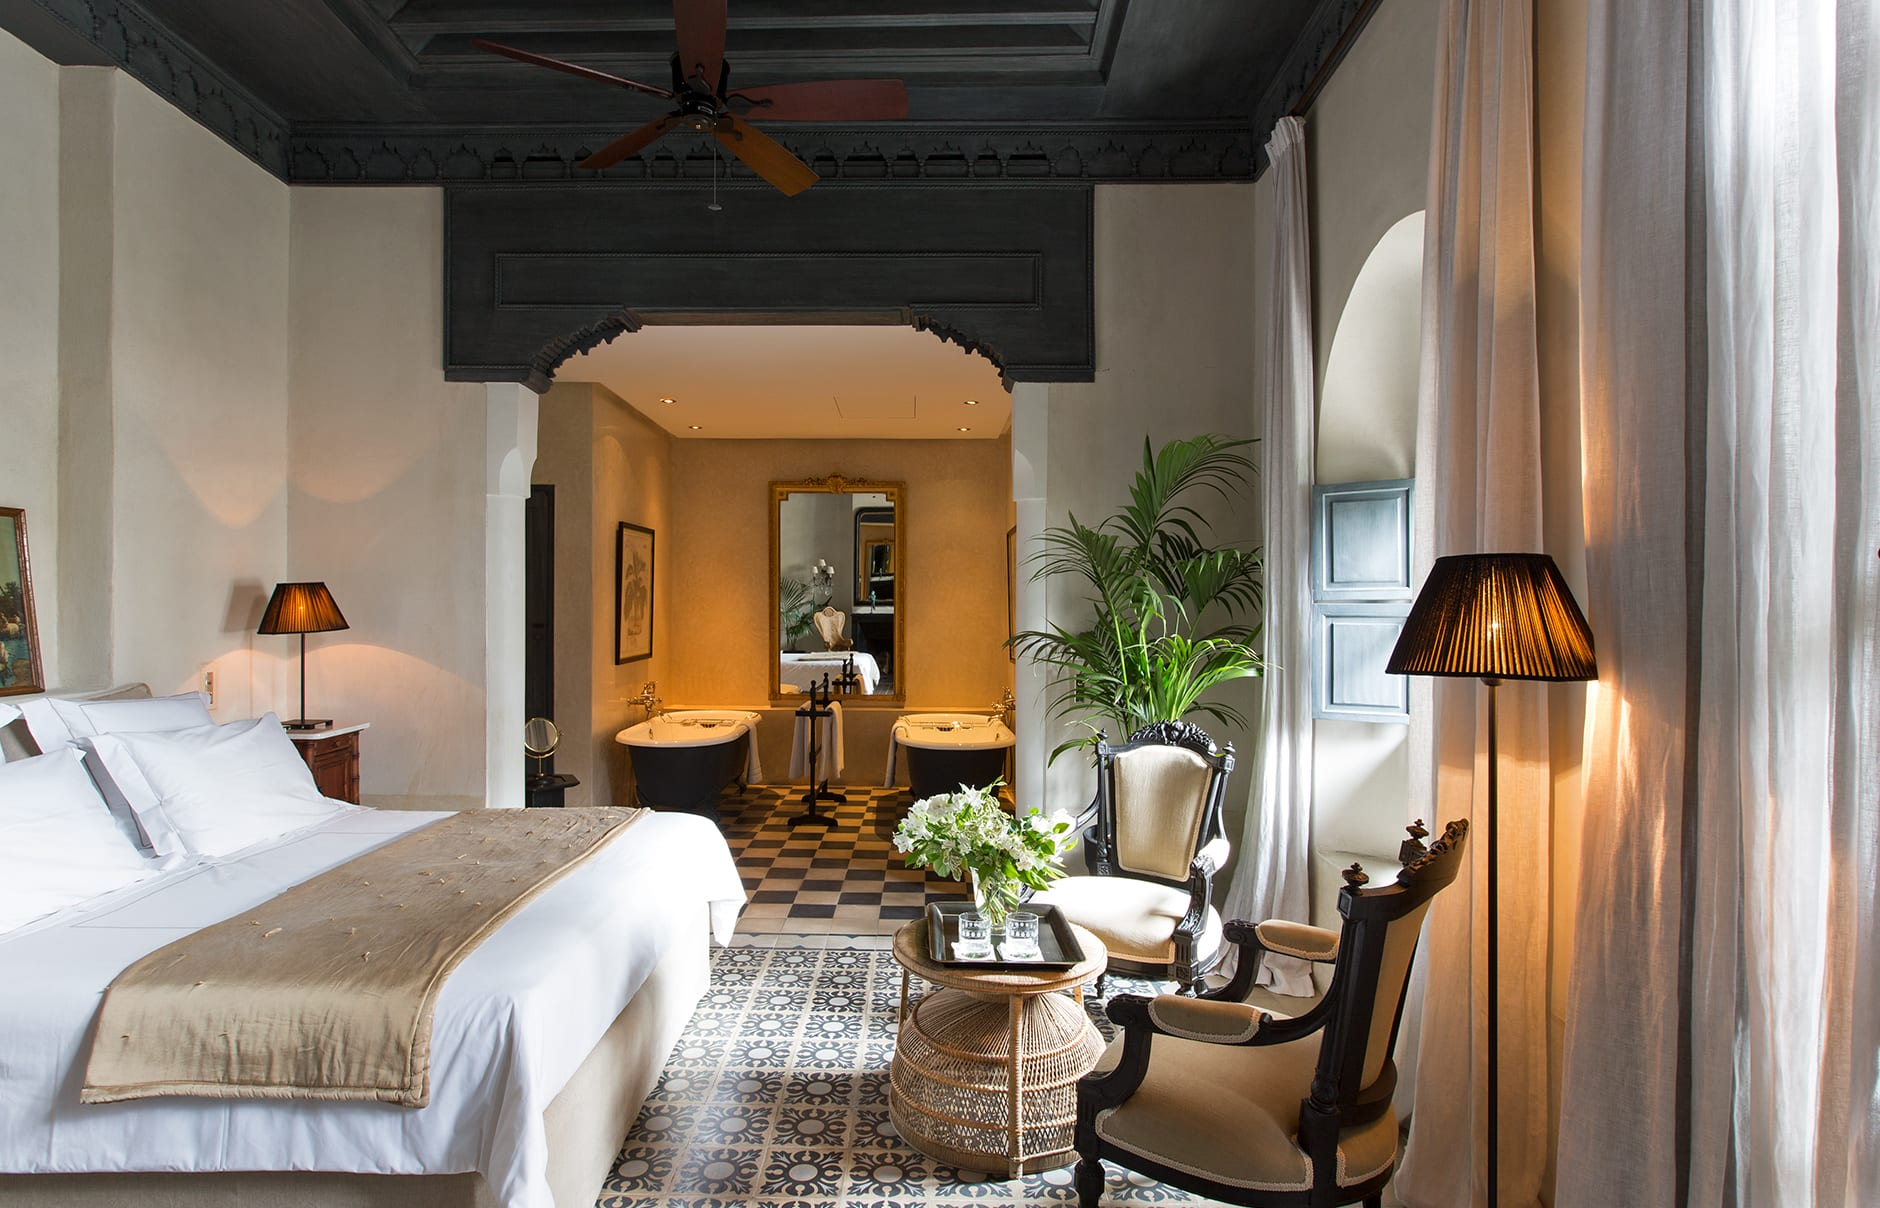 Riad de Tarabel, Marrakech Morocco. Luxury Hotel Review by TravelPlusStyle. Photo © Riad Tarabel